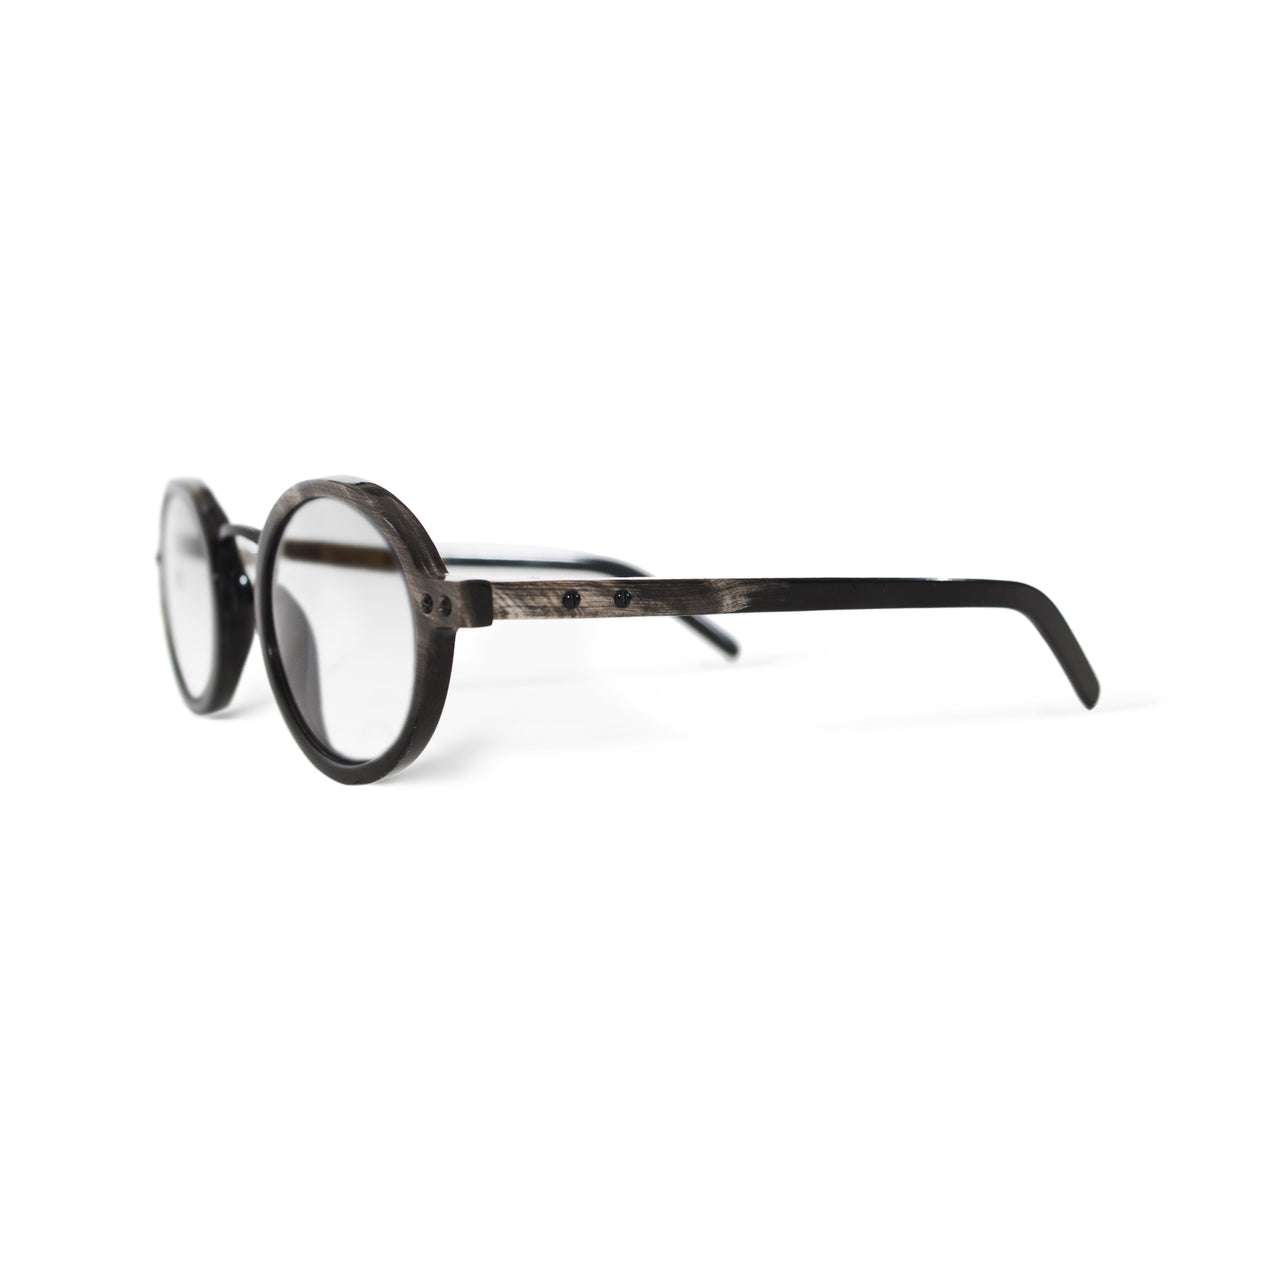 Horn. Dark. Clear Lens. - BLYSZAK eyewear eyewear - eyewear, optical, sunglasses